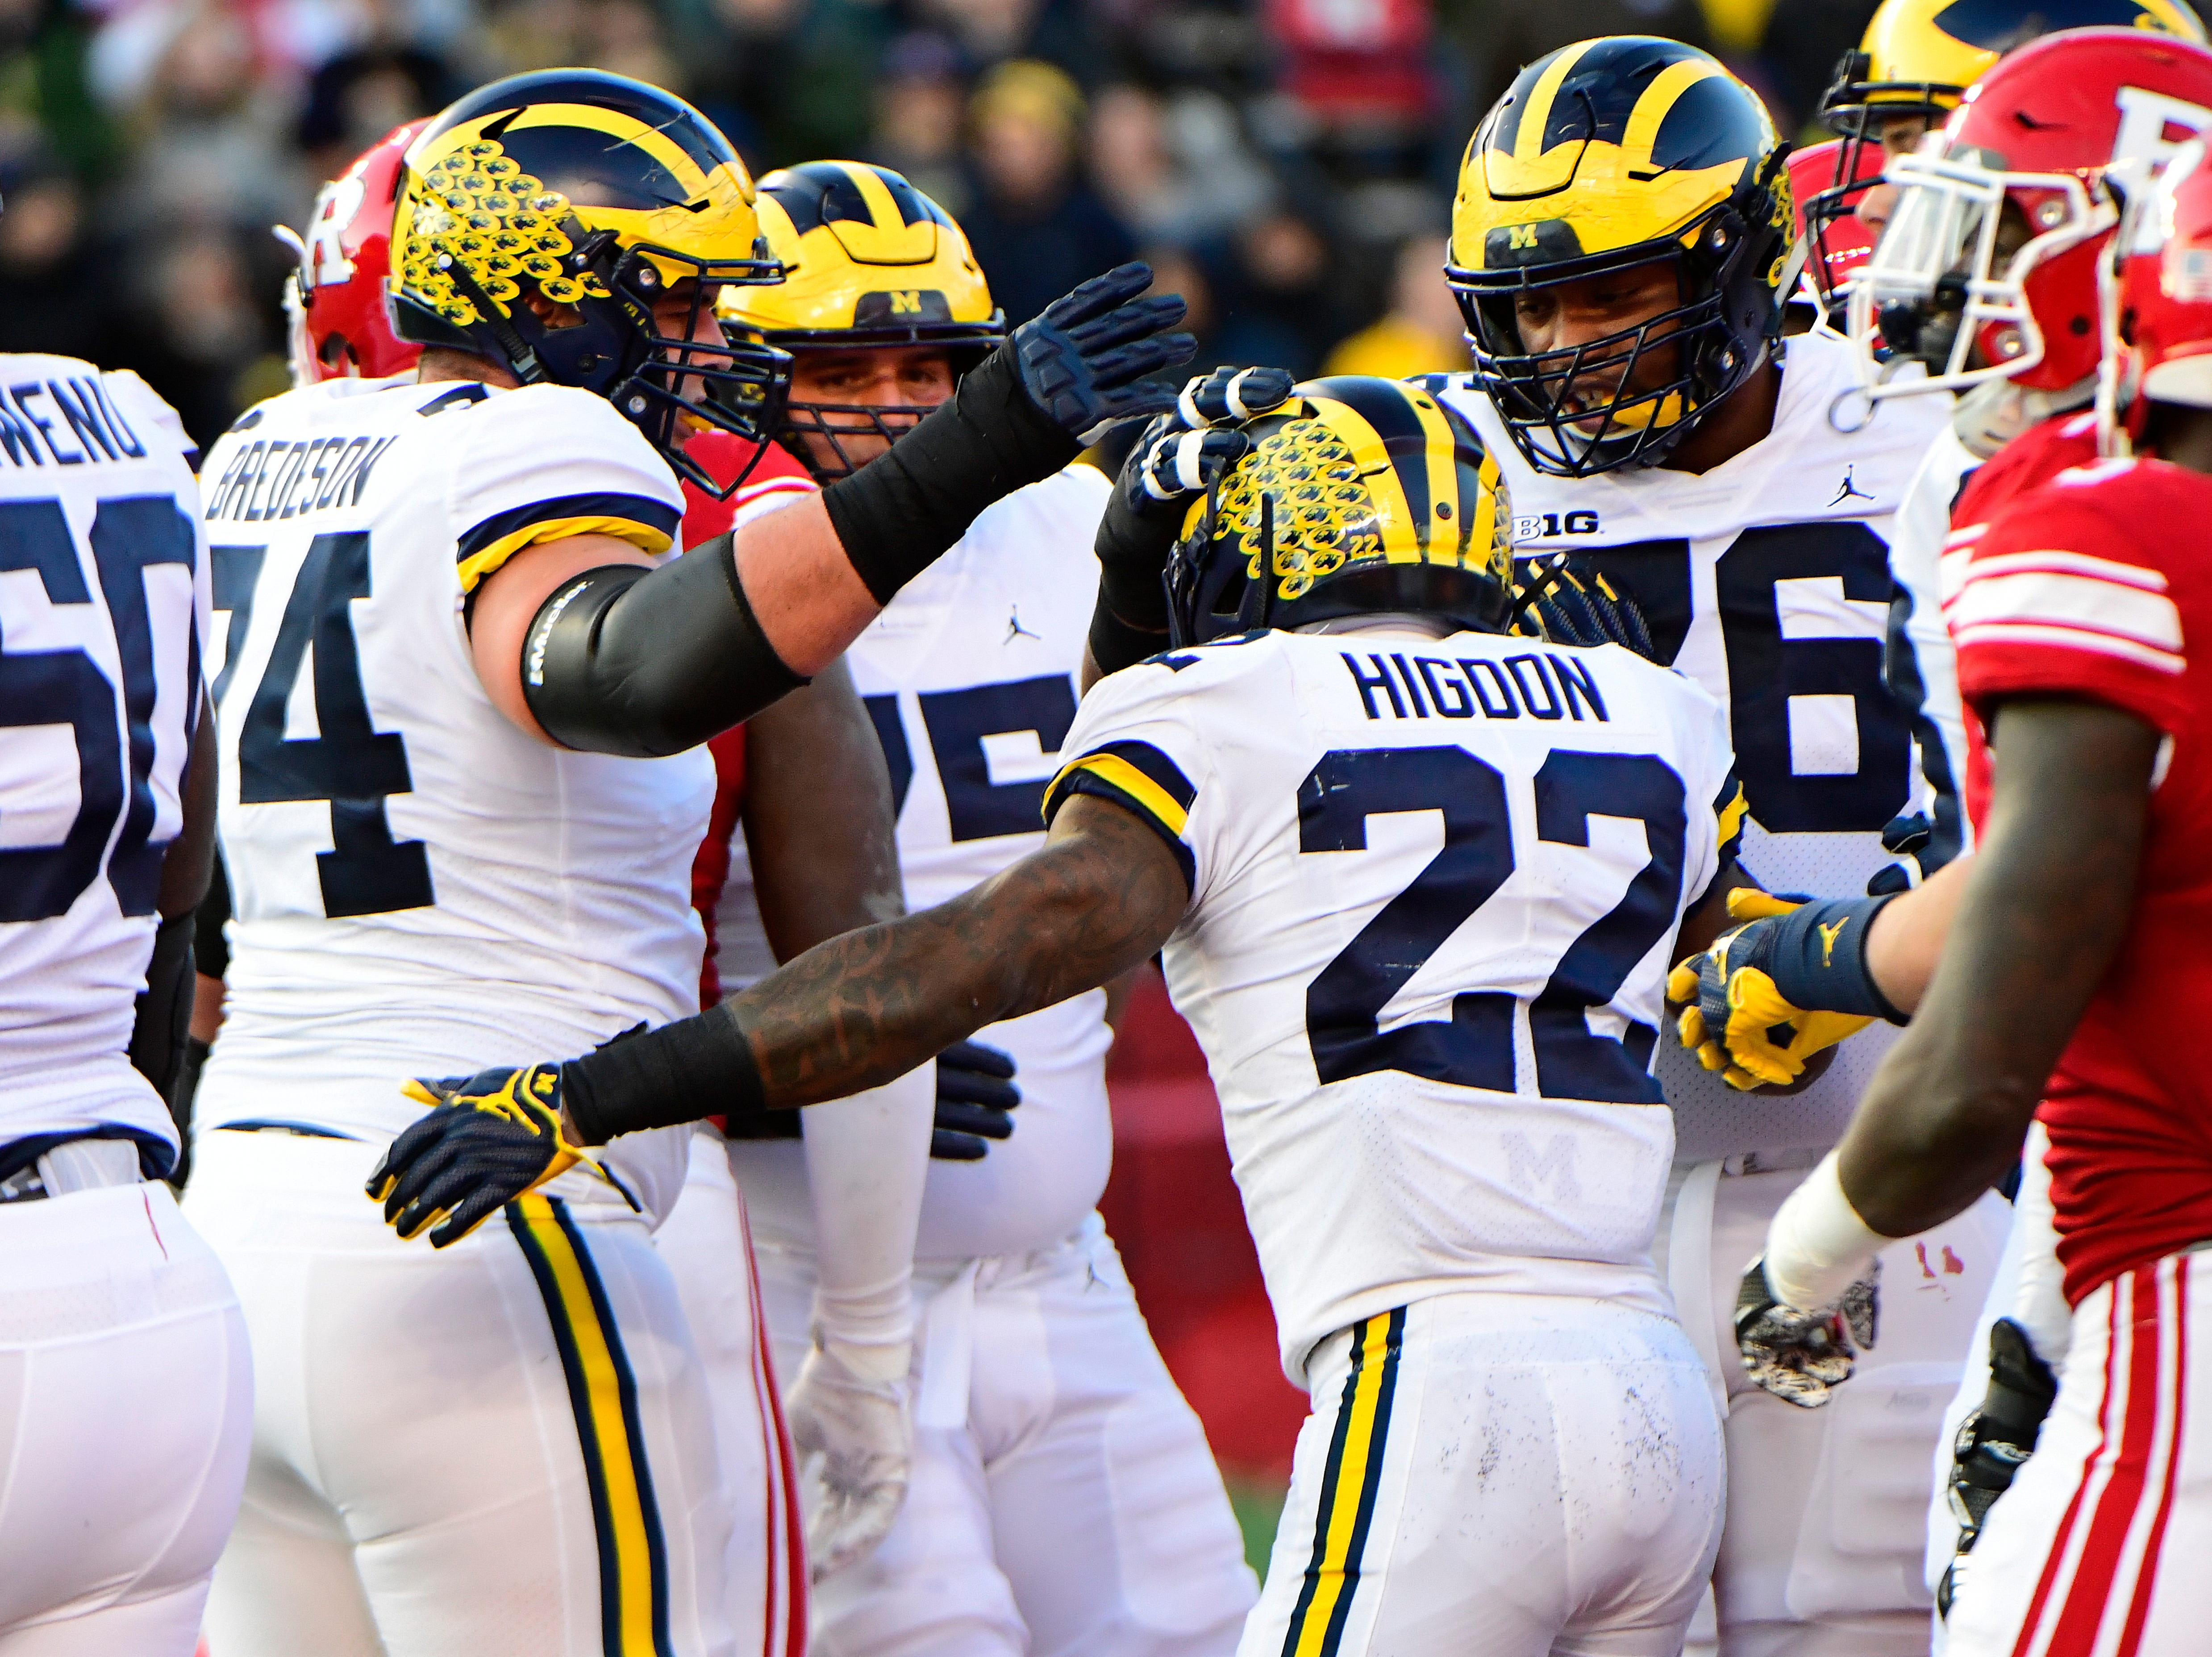 Karan Higdon of the Michigan Wolverines is lauded by teammates after a touchdown against the Rutgers Scarlet Knights during the first quarter.